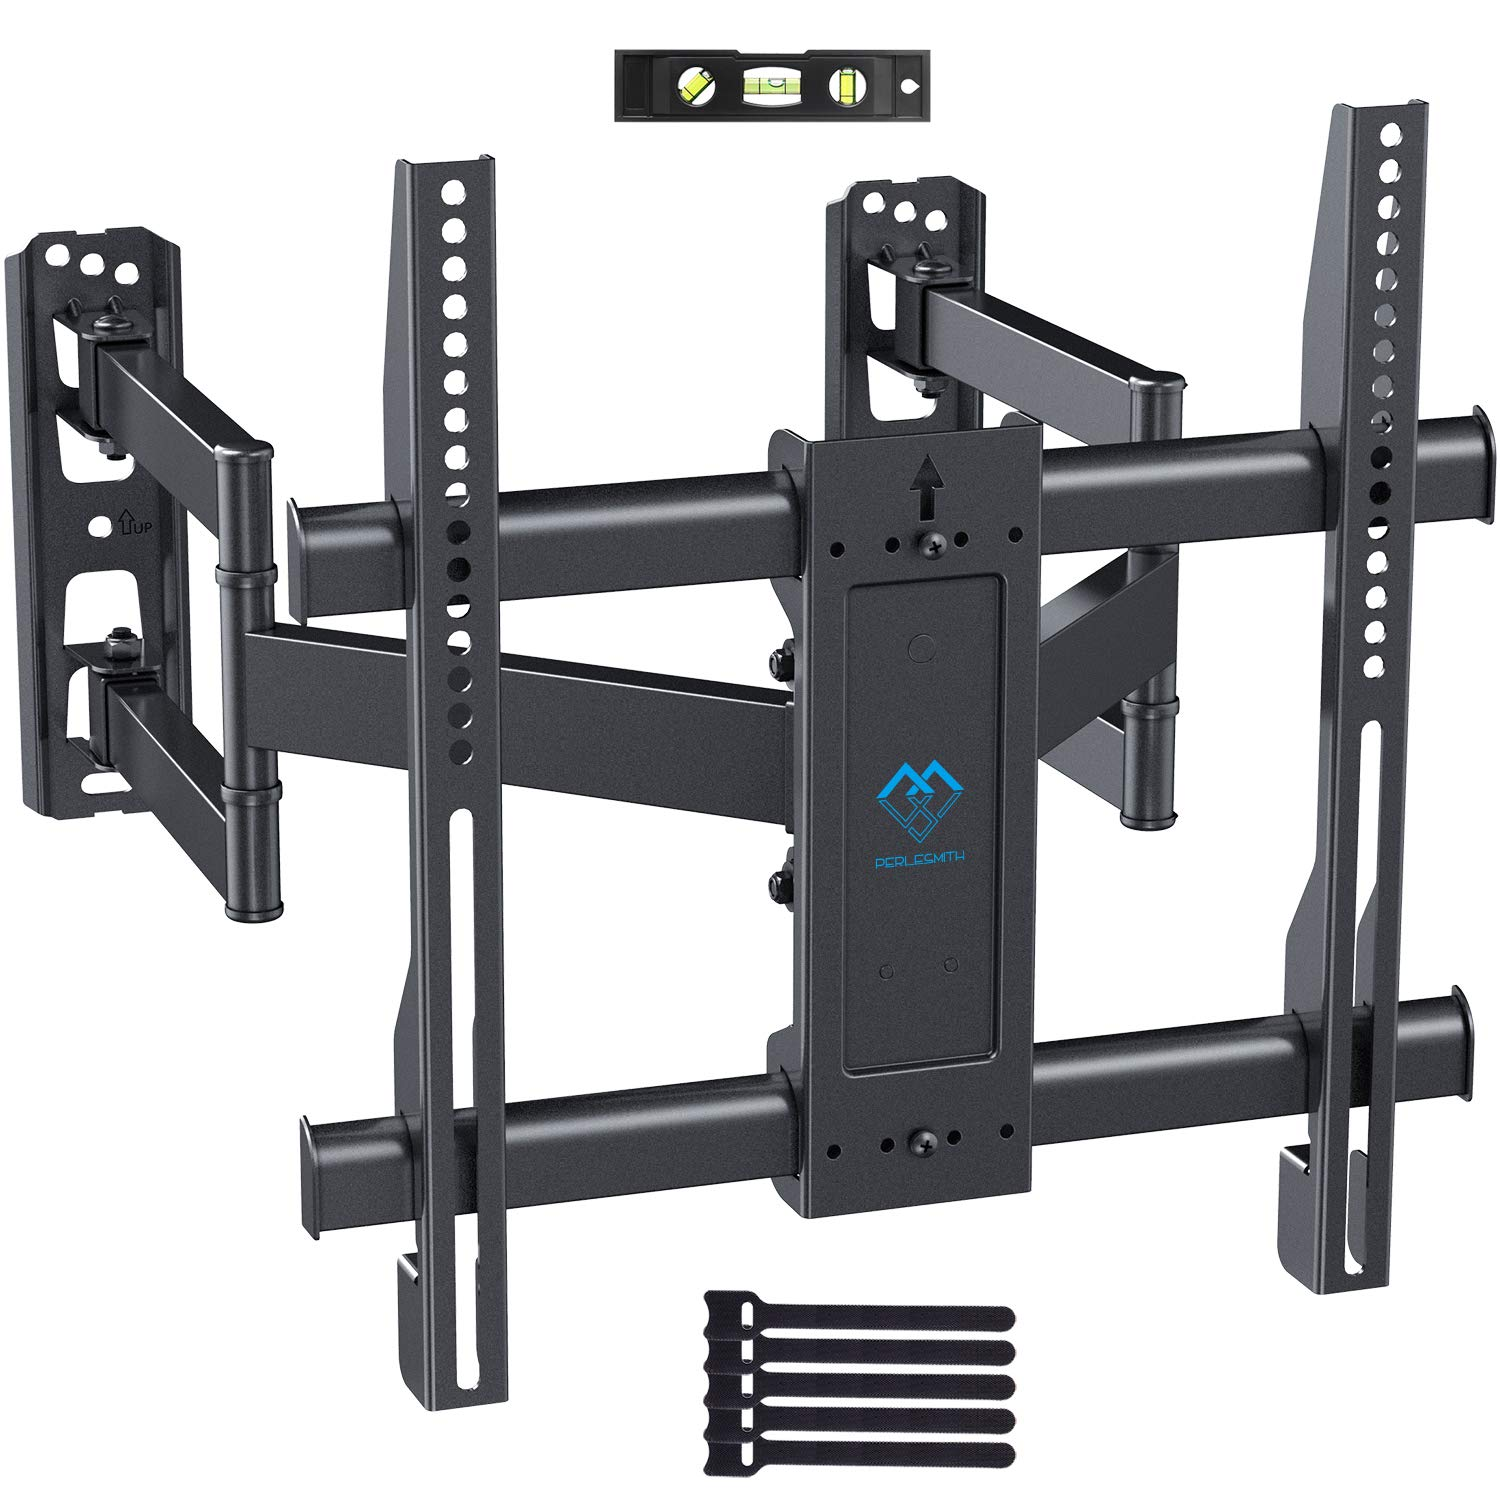 Corner TV Wall Mount Bracket Tilts, Swivels, Extends - Full Motion Articulating TV Mount for 26-55 Inch LED, LCD, Plasma Flat Screen TVs - Holds up to 99 Lbs, VESA 400x400 - Heavy Duty TV Bracket by PERLESMITH